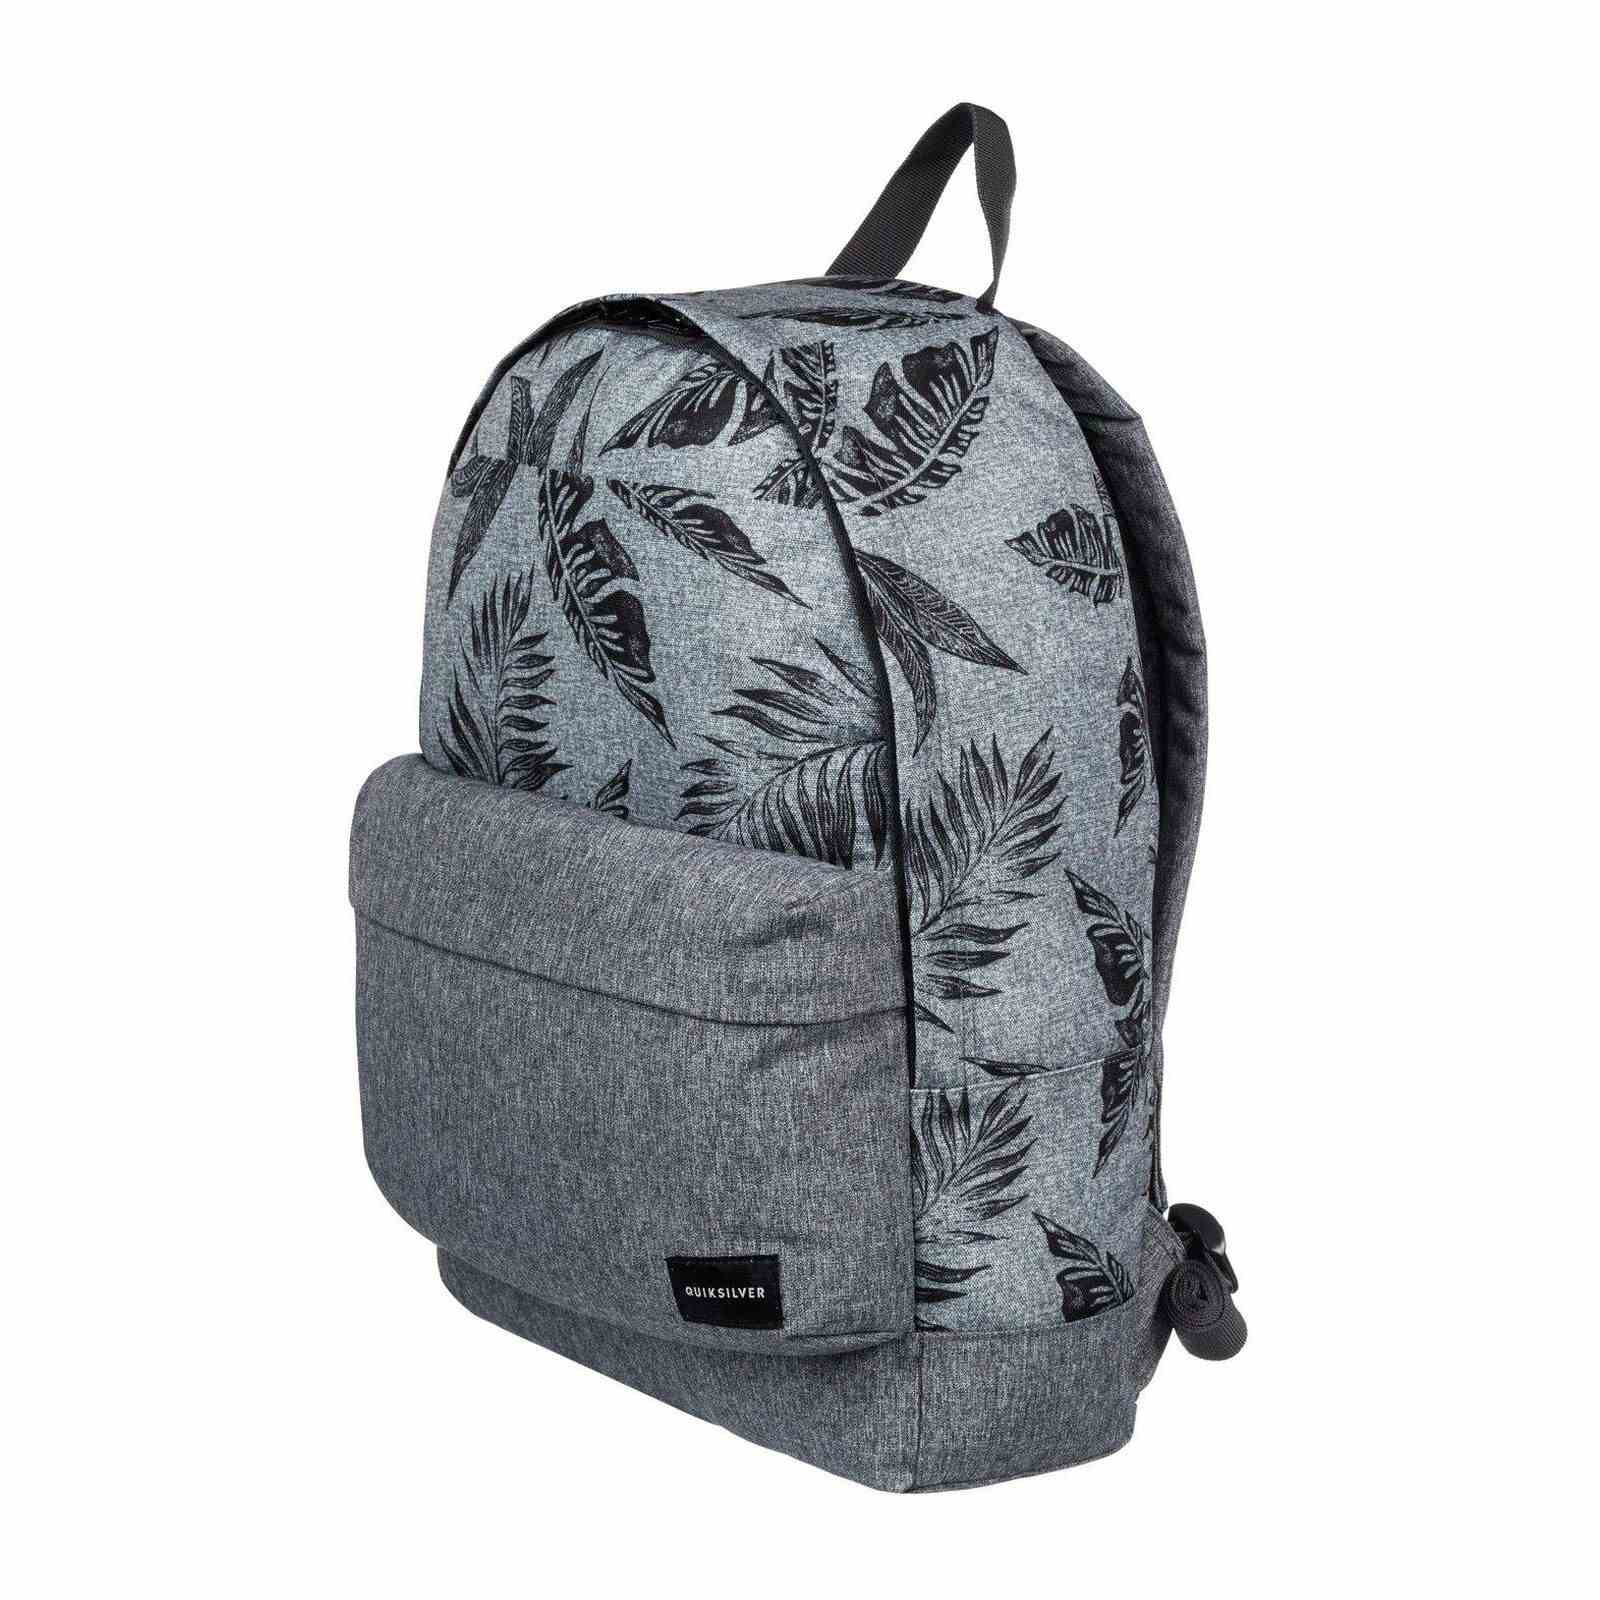 Shd Everyday Sac Quiksilver À Gris Brandalley Dos 7wznqdB